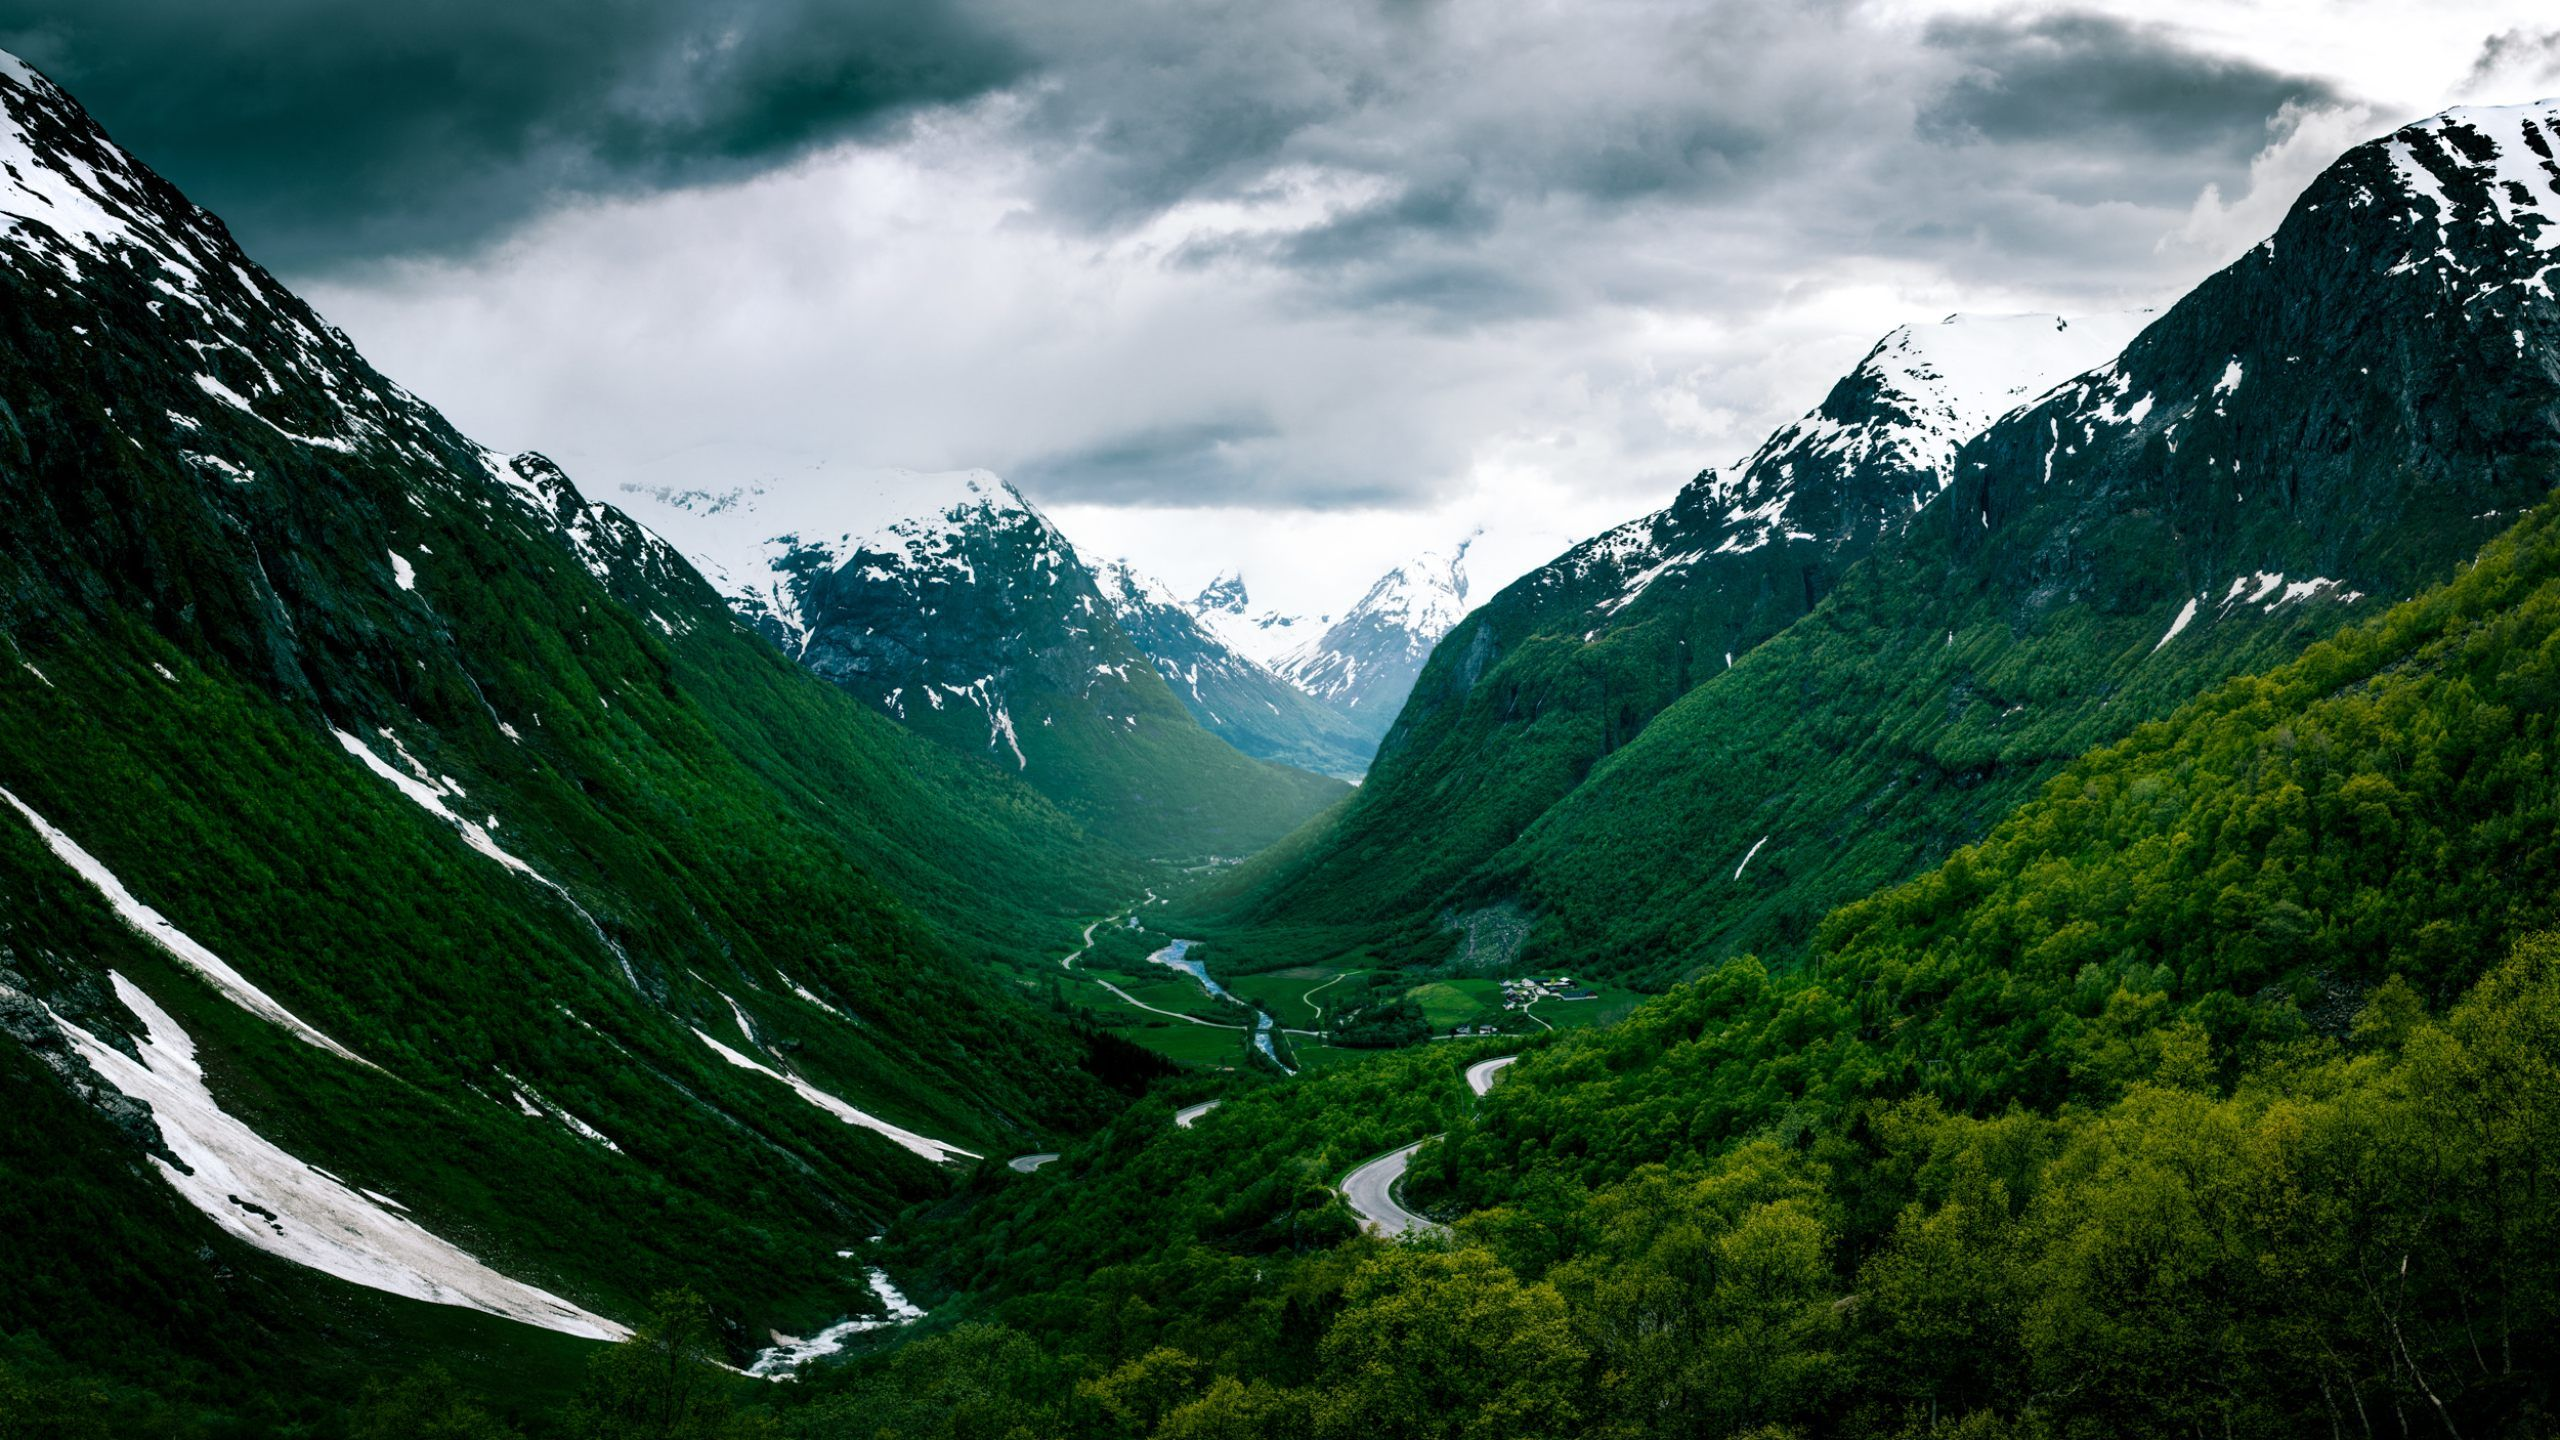 Desktop Green Scenery Mountain Landscape Hd With Wallpaper Free Download High Quality For Smartphone Norway Scenery Wallpaper Green Scenery Mountain Wallpaper